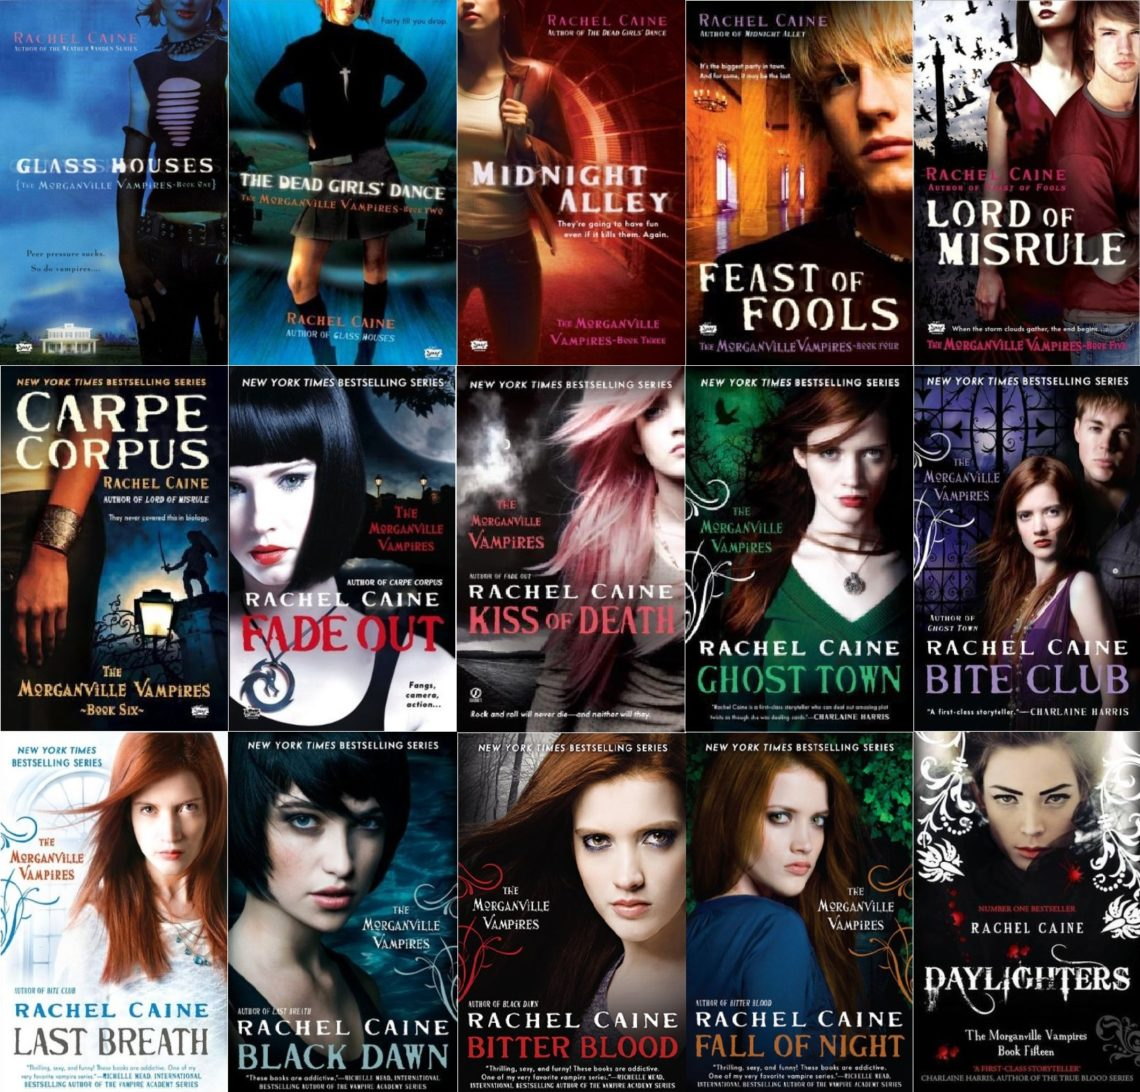 The Vampyre book series for Glass Houses.